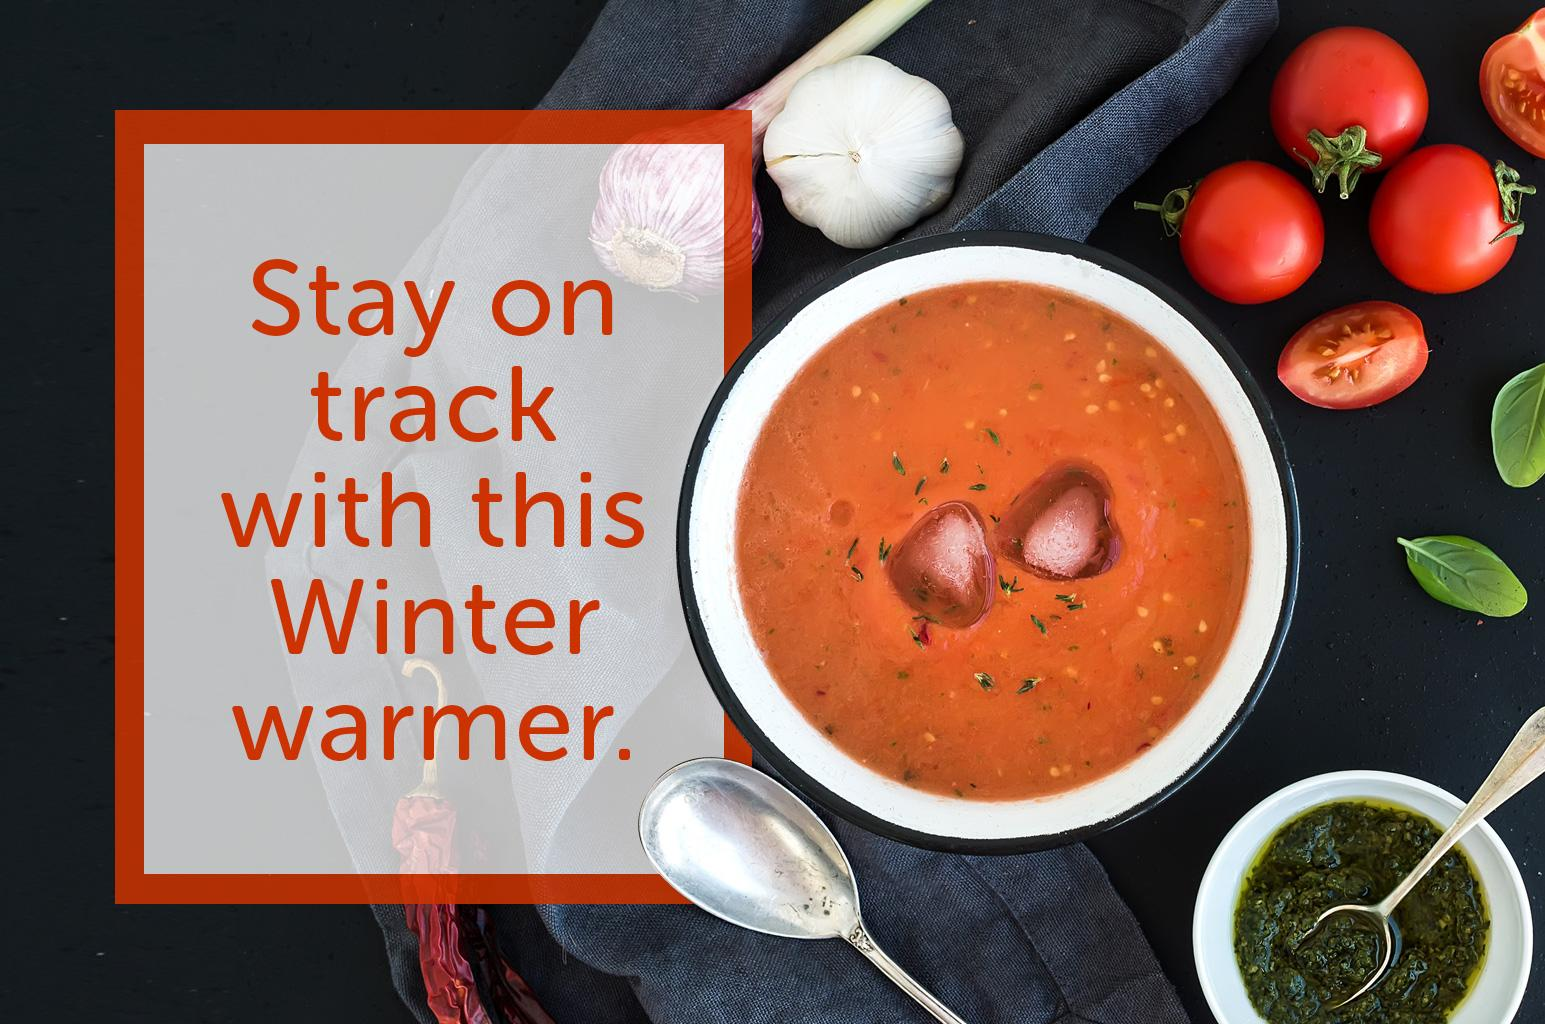 Stay on track with this Winter warmer